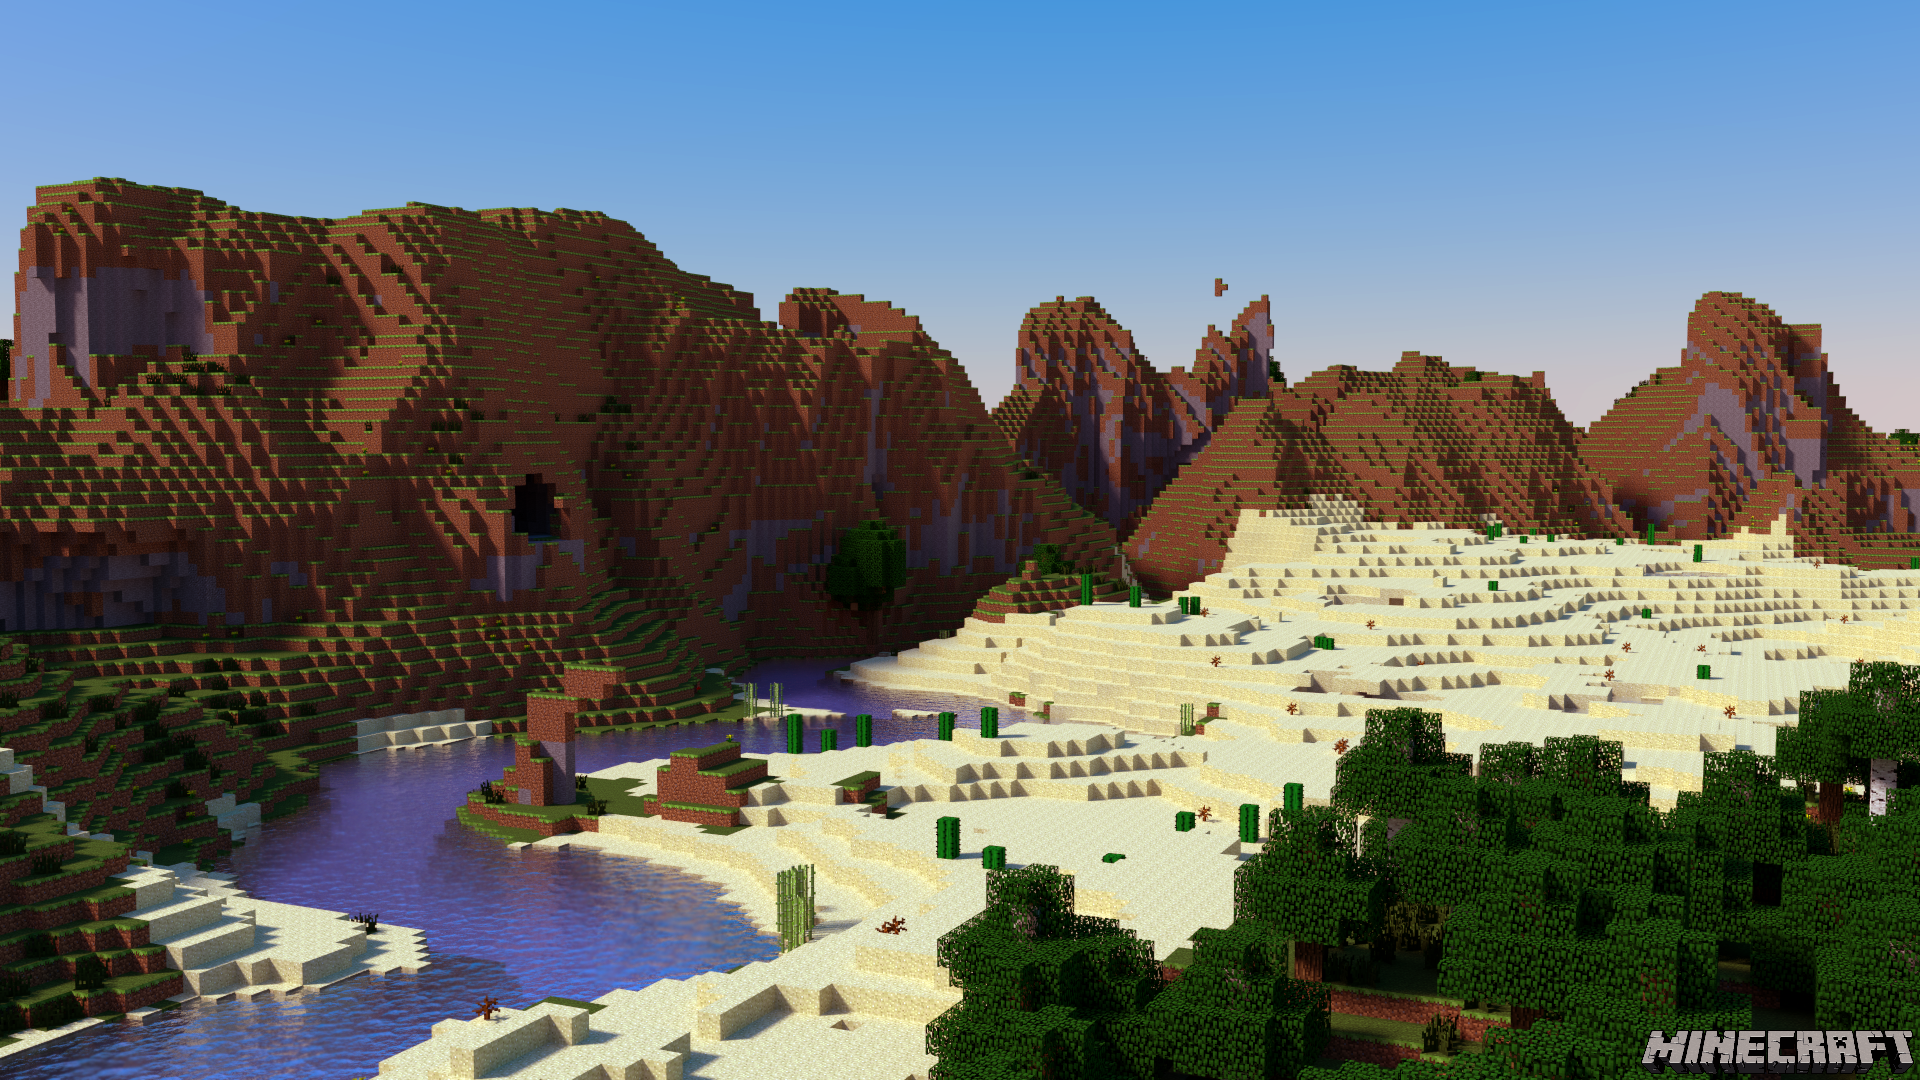 Minecraft Desktop - Flowing River by PerpetualStudios